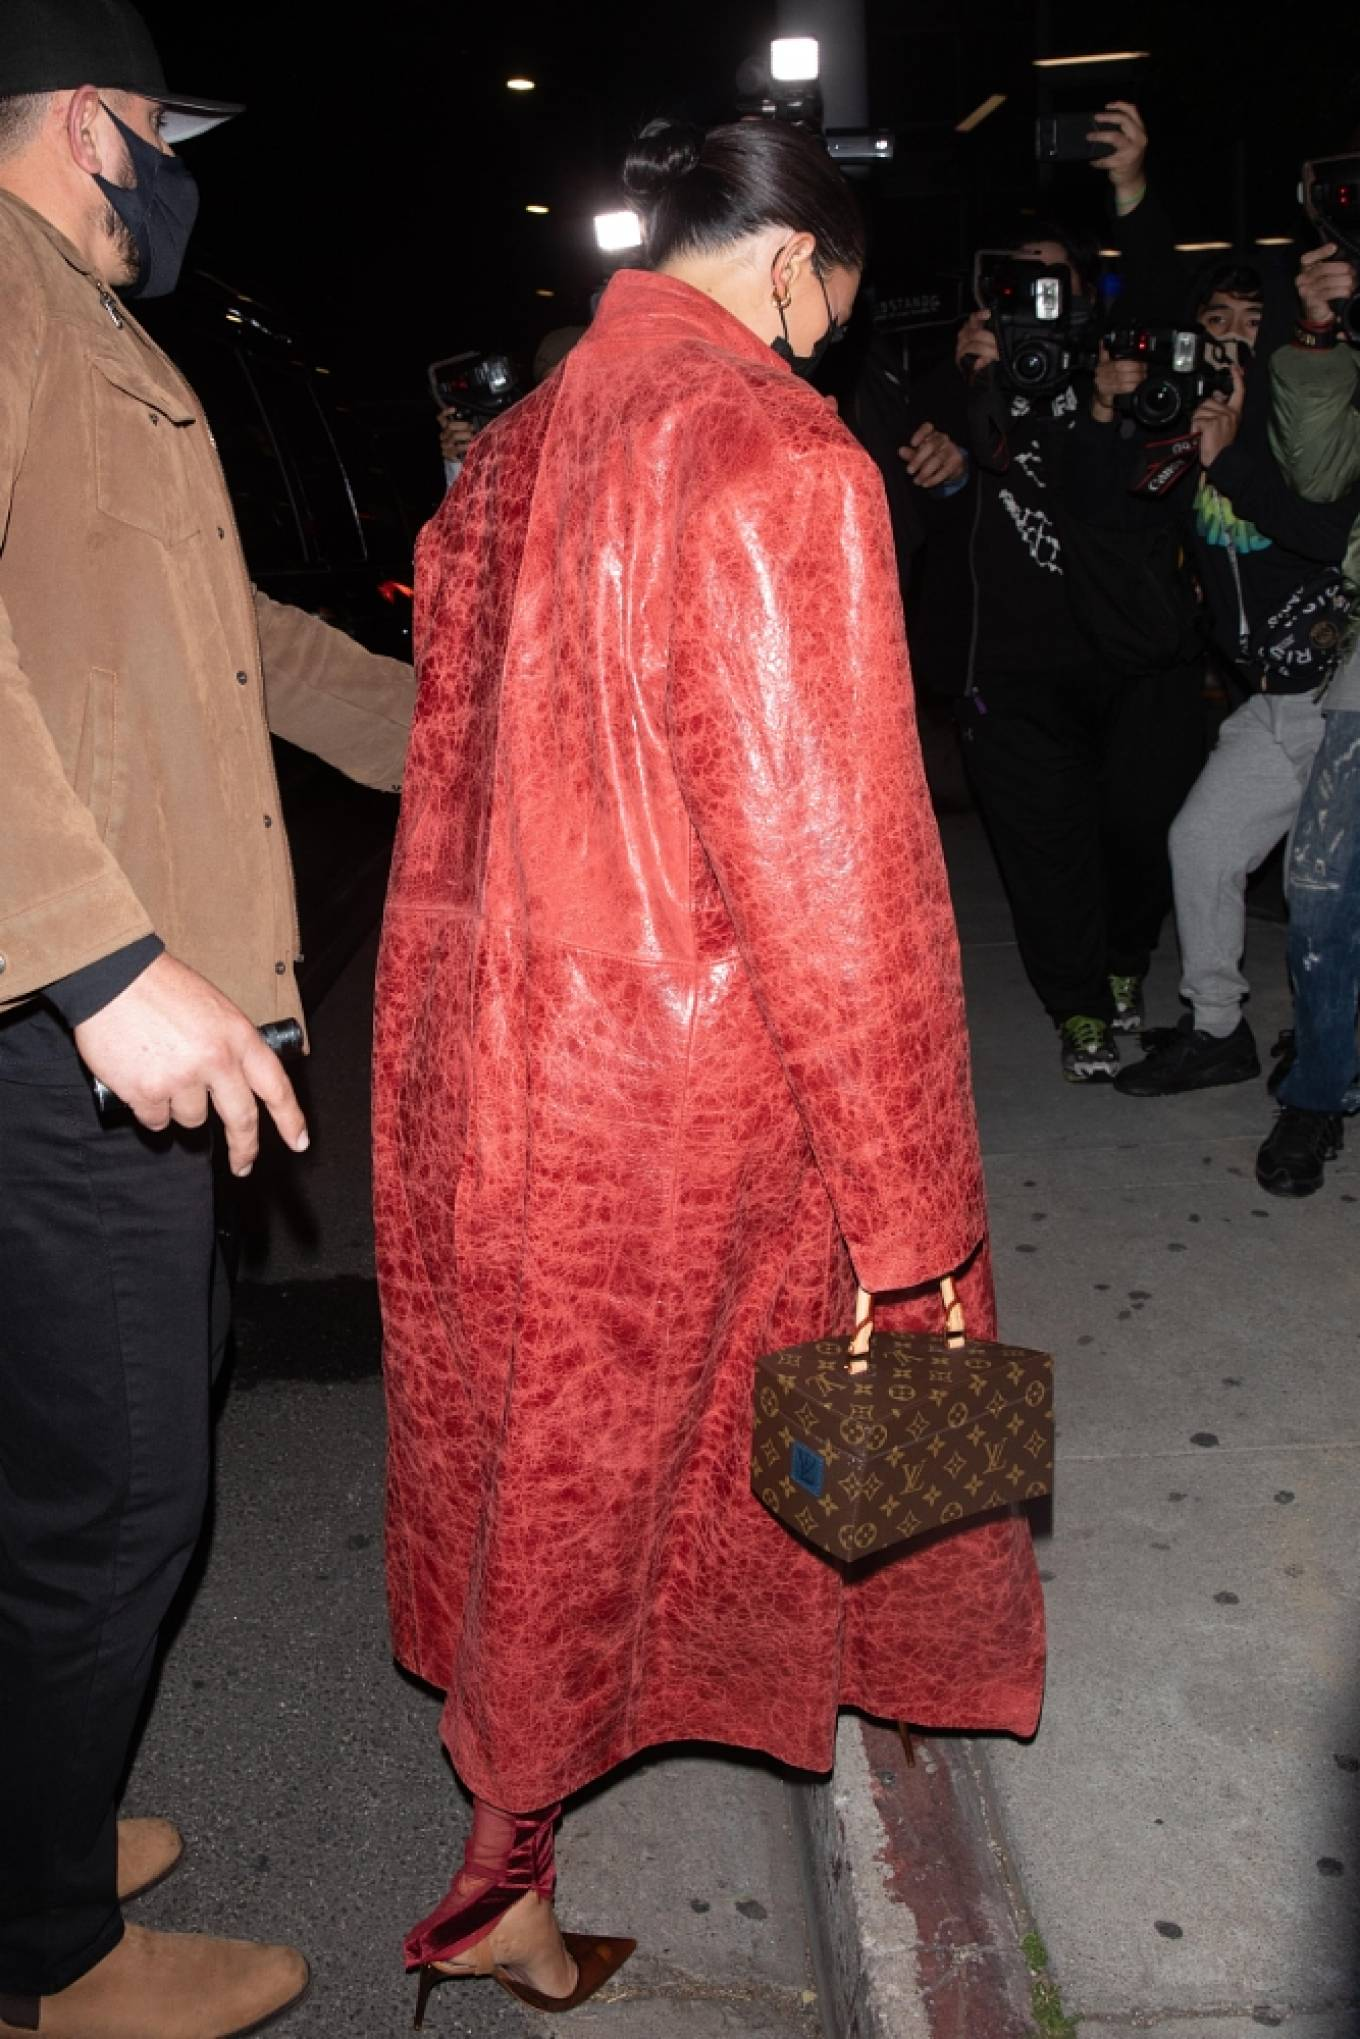 Kylie Jenner wearing a sheer catsuit with a velvet fabric, full sleeves, cut outs and a high neck